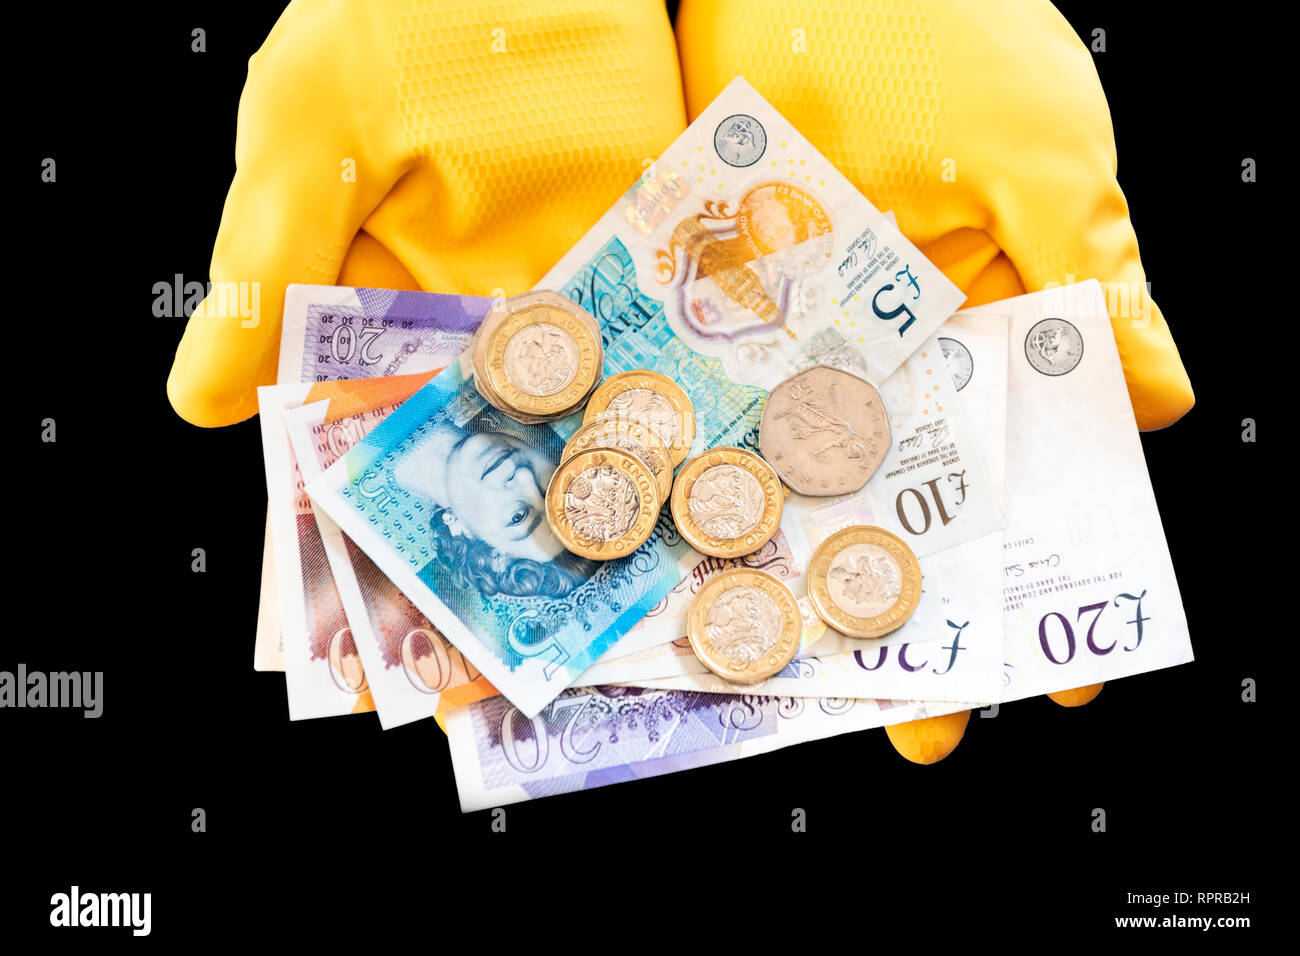 A pair of hands wearing yellow rubber gloves holding pound notes & coins. Concept cash in hand, black economy or low pay. - Stock Image